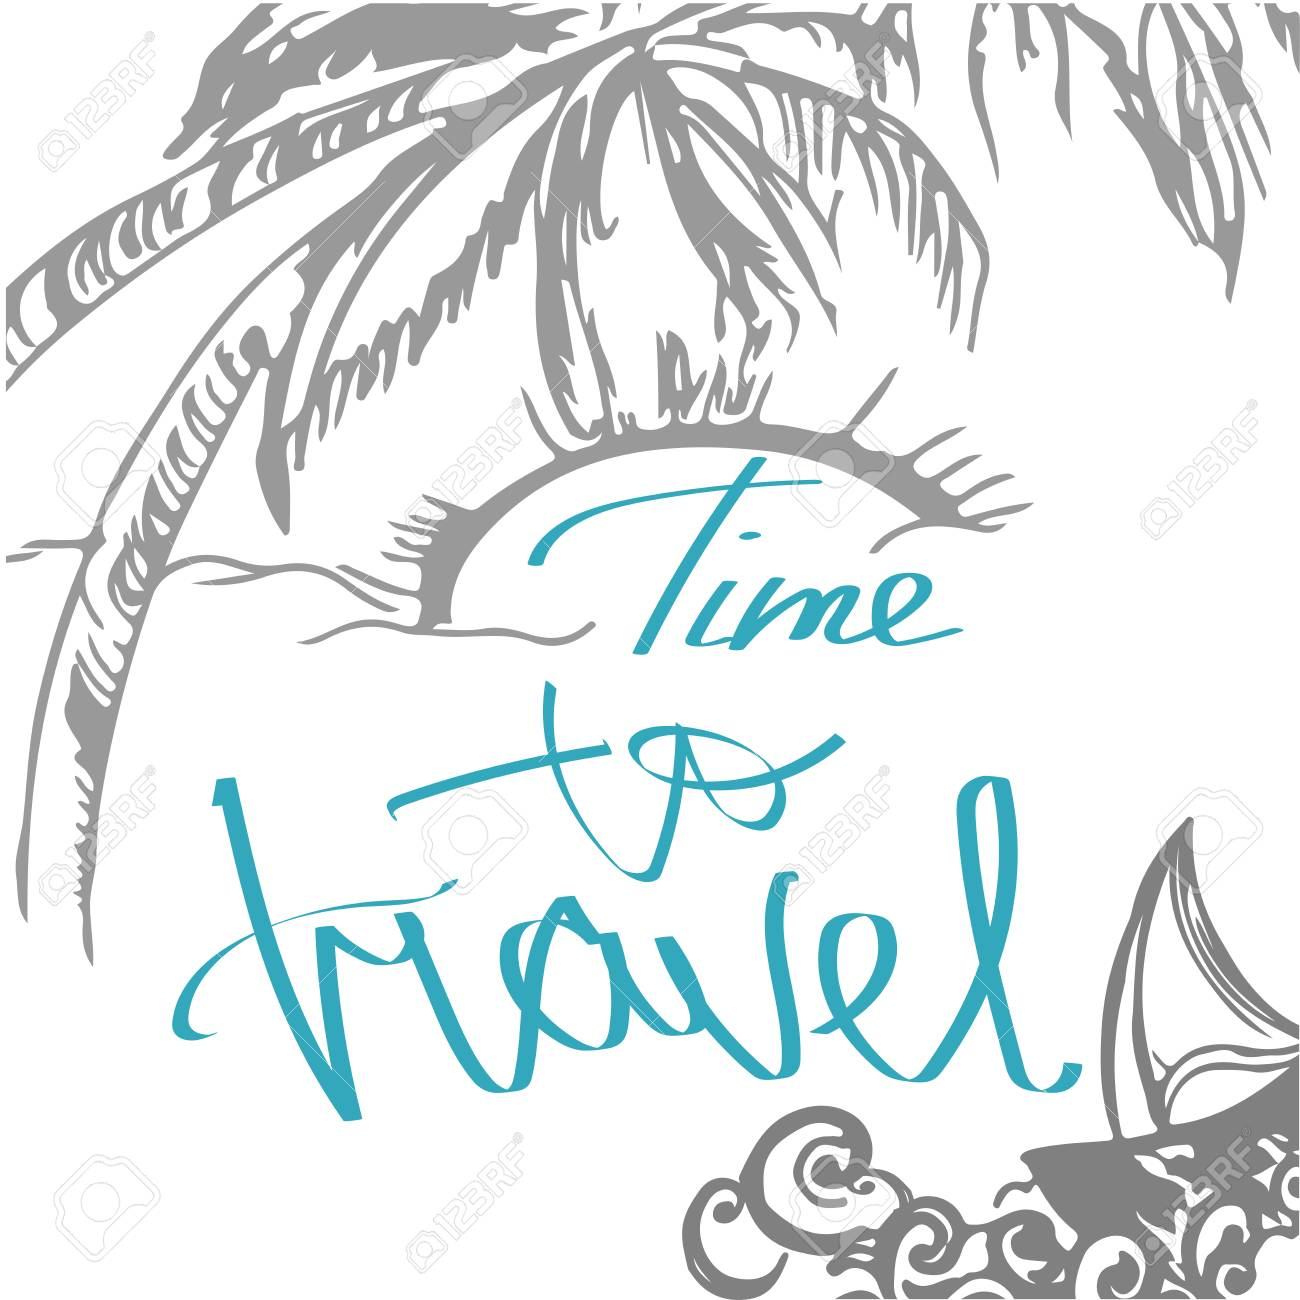 Travel Hand Drawn Sketch For Design Handwritten Letters Adventure Stock Photo Picture And Royalty Free Image Image 70121042